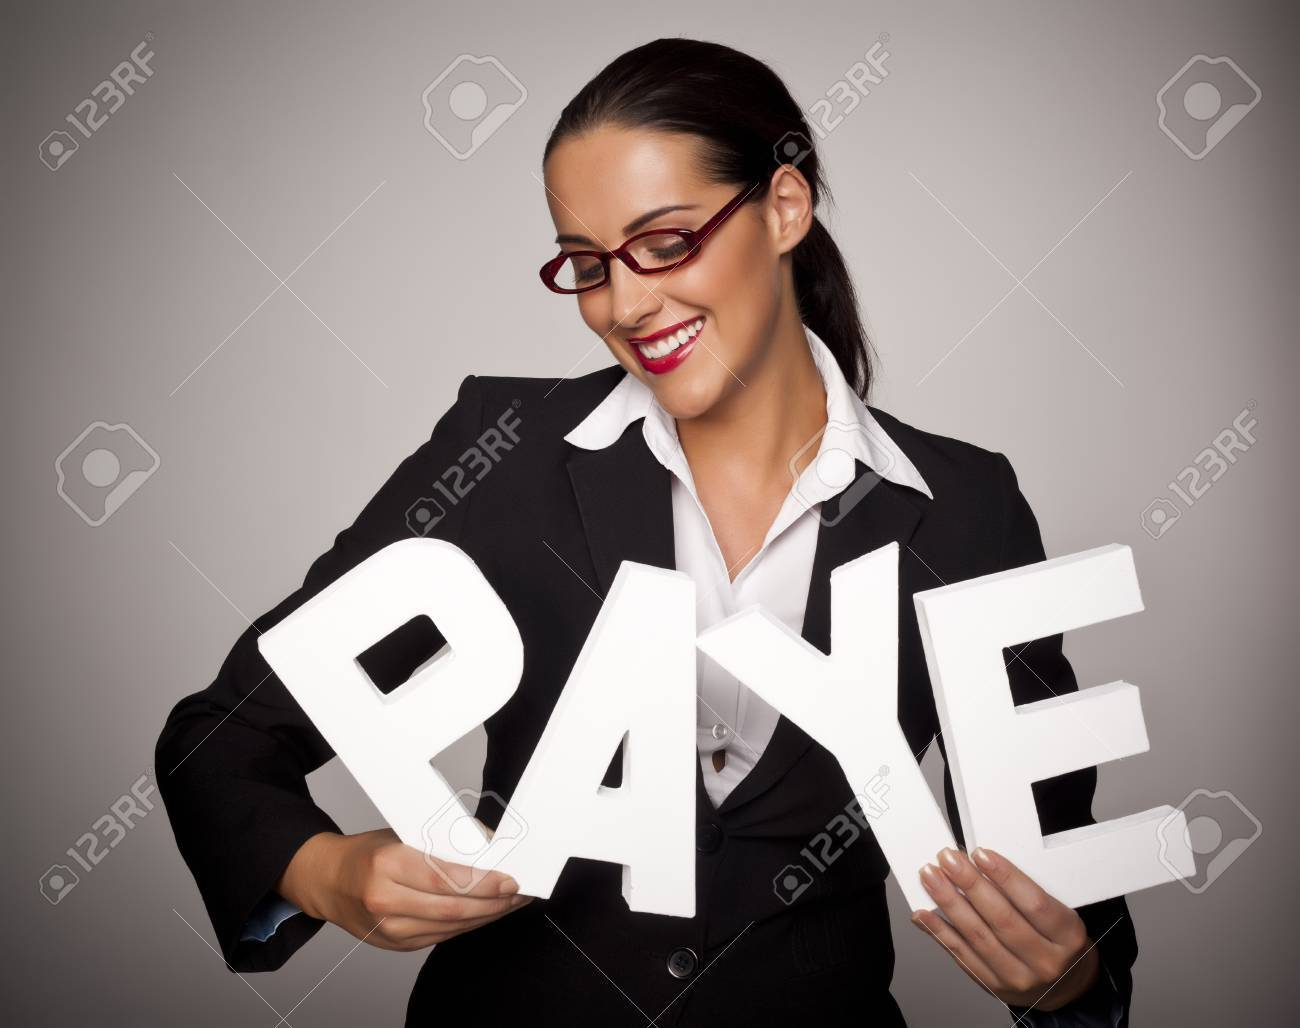 Income tax concept with a beautiful businesswoman holding letters spelling out PAYE that stands for pay as you earn - 16249963